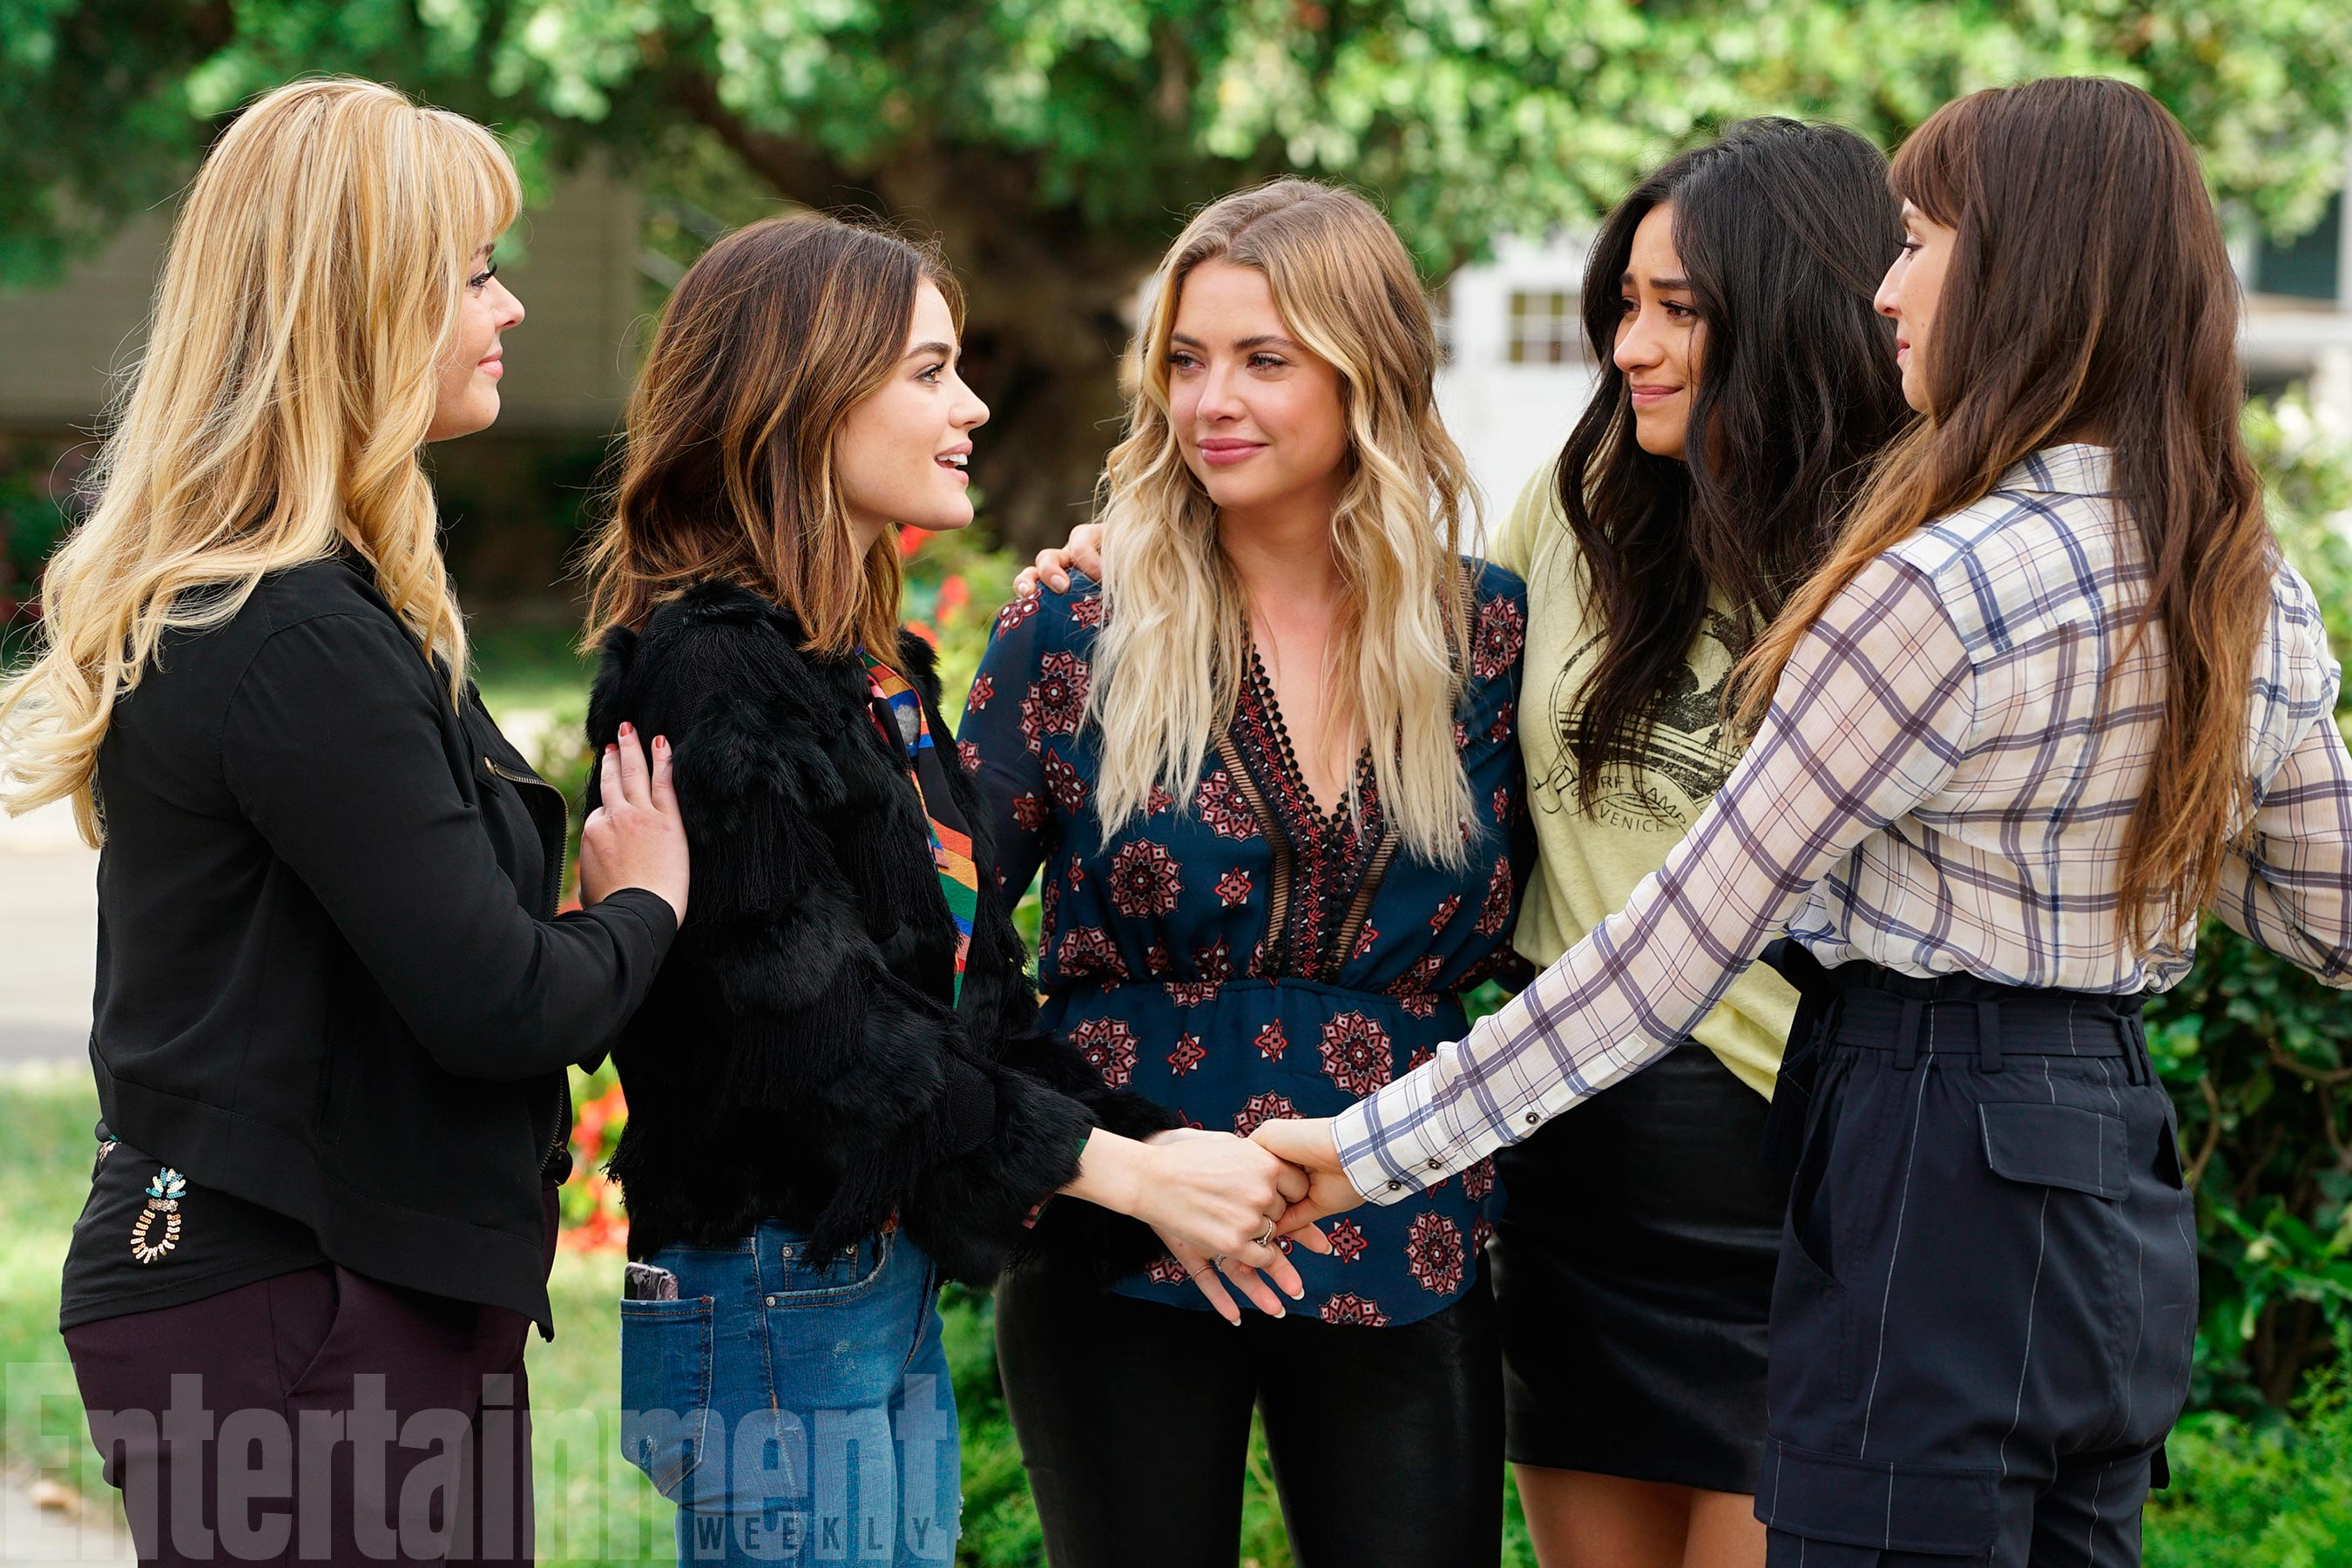 SASHA PIETERSE, LUCY HALE, ASHLEY BENSON, SHAY MITCHELL, TROIAN BELLISARIO